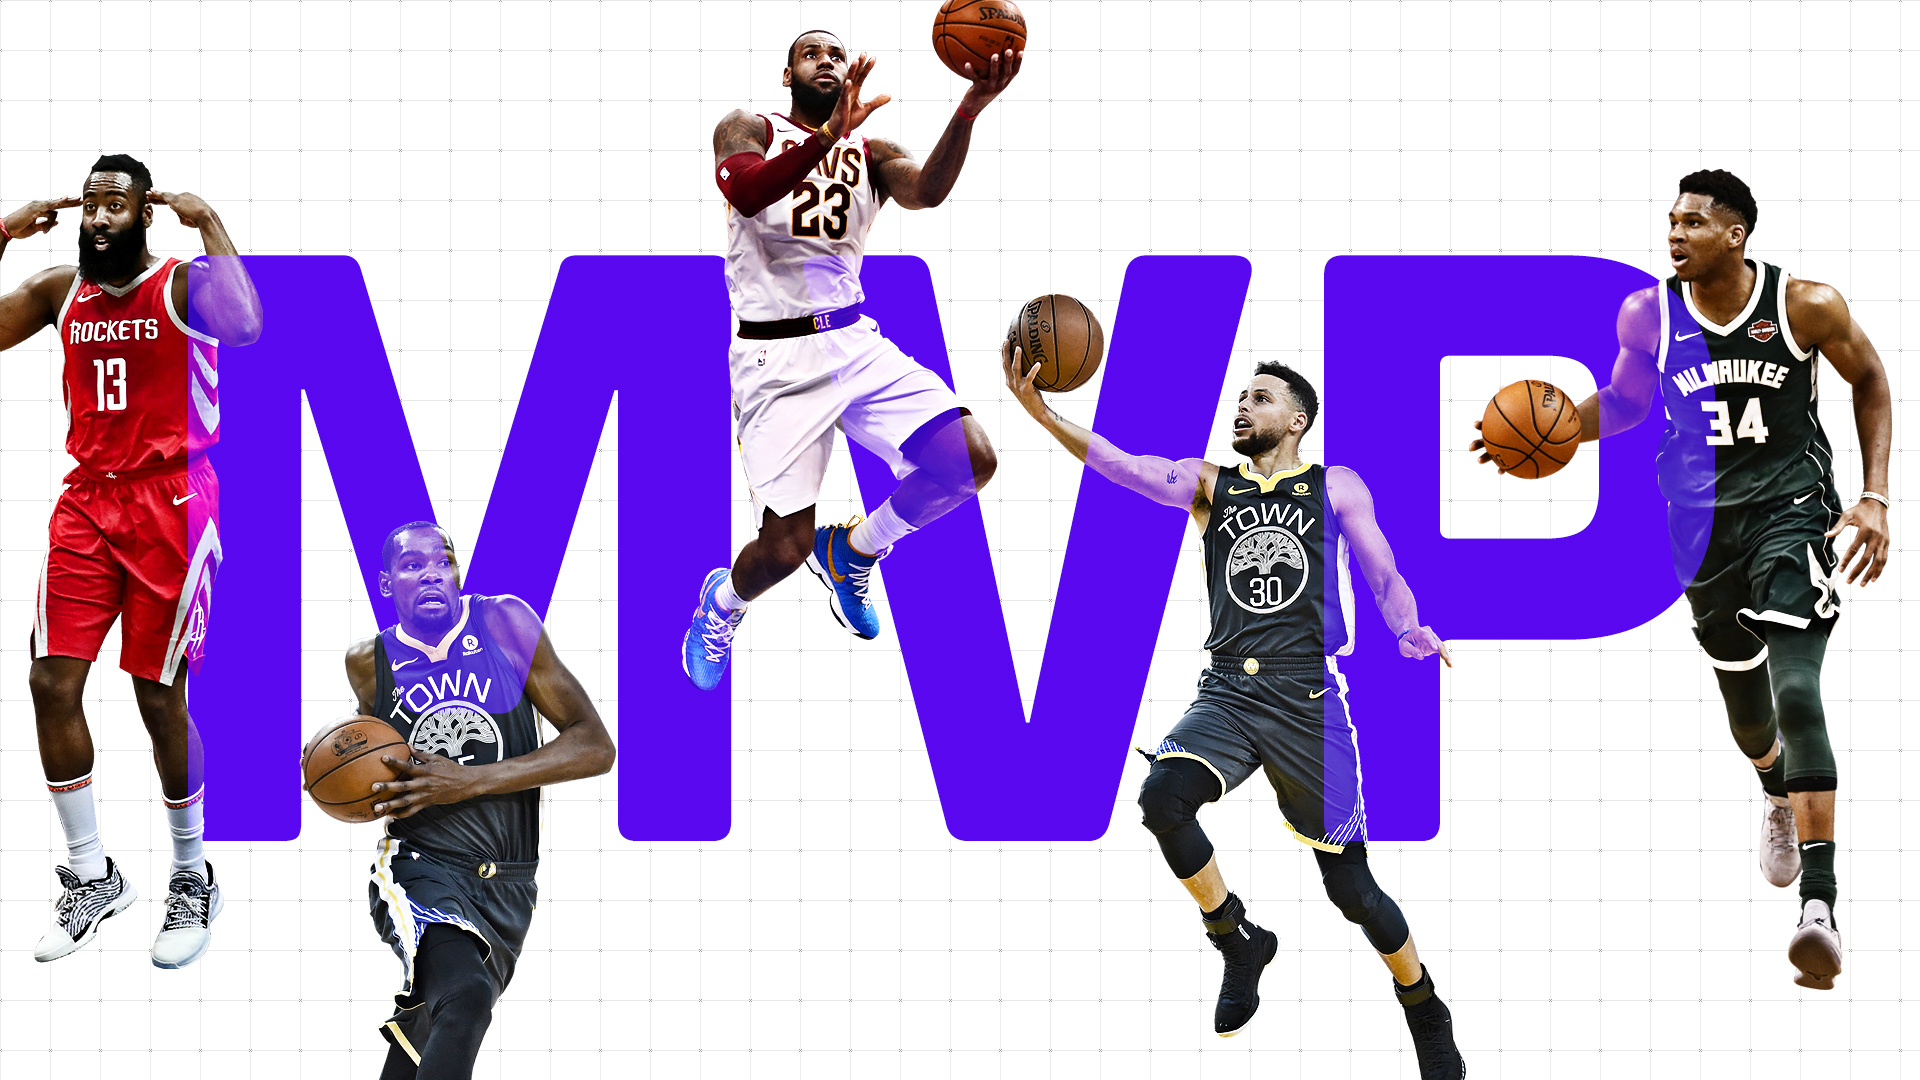 2018 NBA awards ballot: How would playoff performances change MVP, ROY voting?